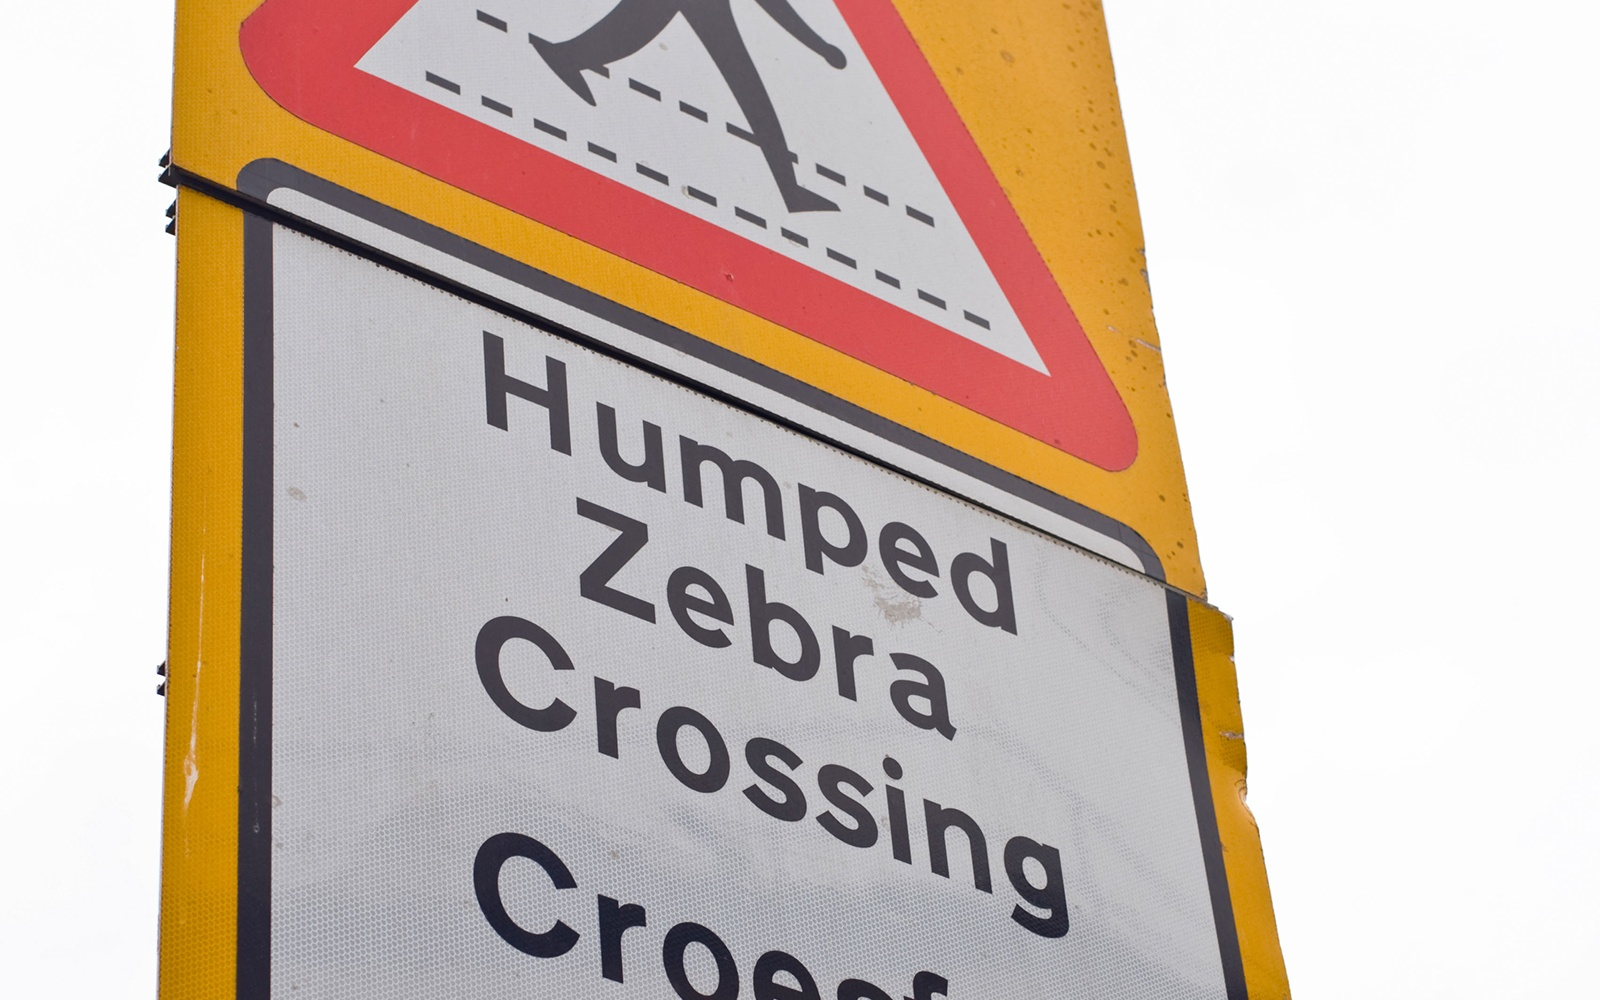 201209-w-funniest-signs-humped-zebra